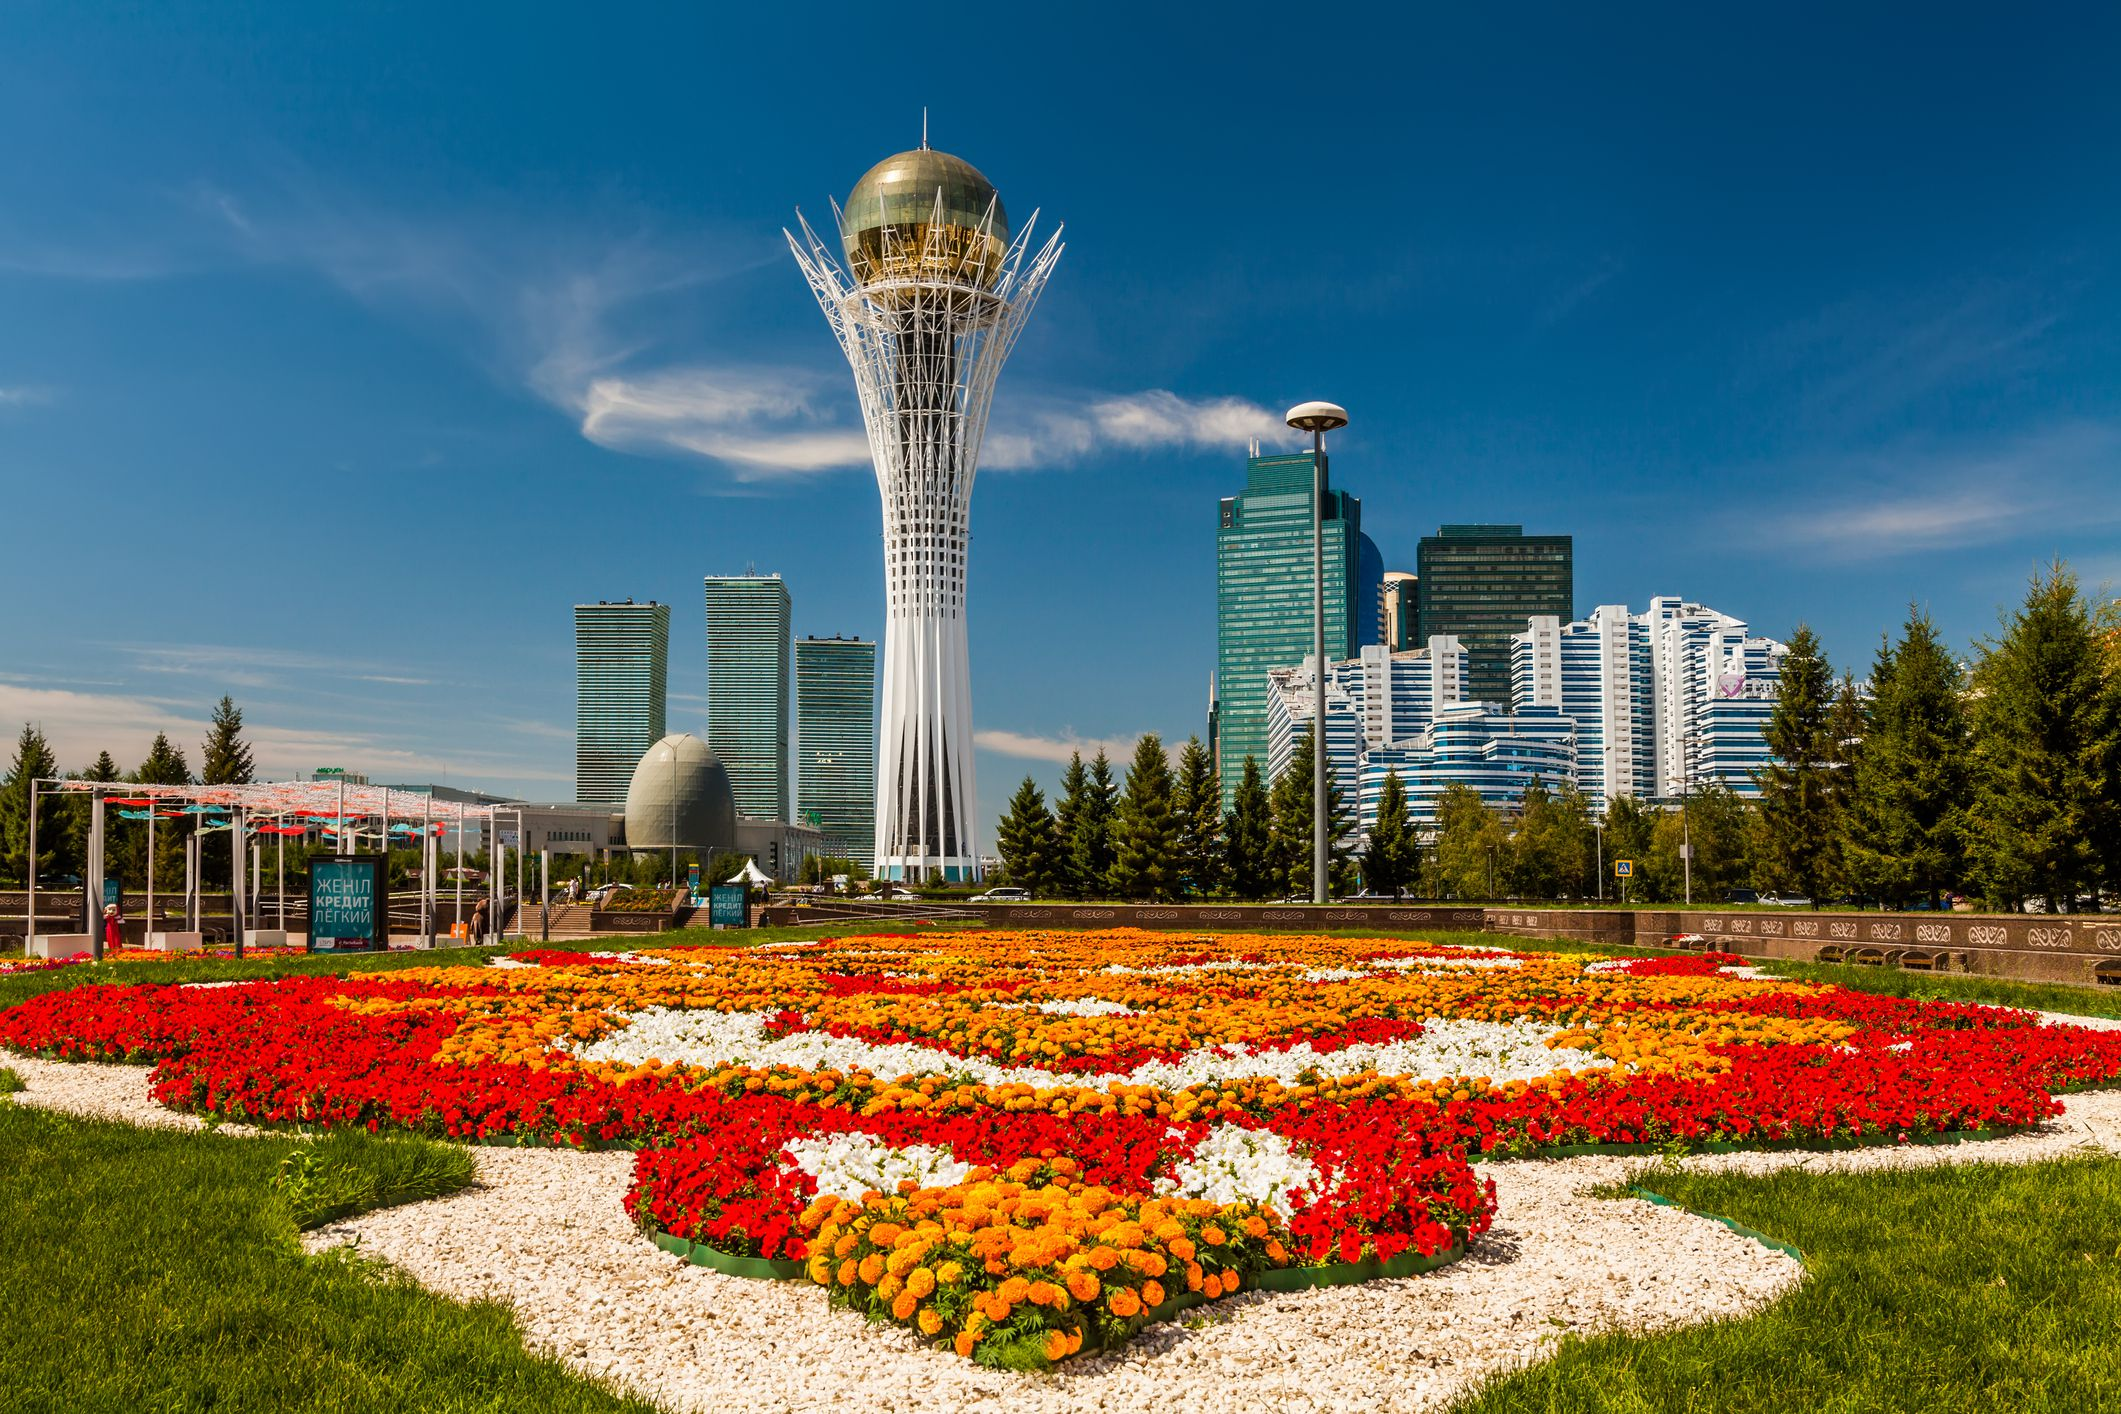 The Bayterek Tower is a Symbol of Kazakhstan The central boulevard, with flower beds leading up to Bayterek Tower